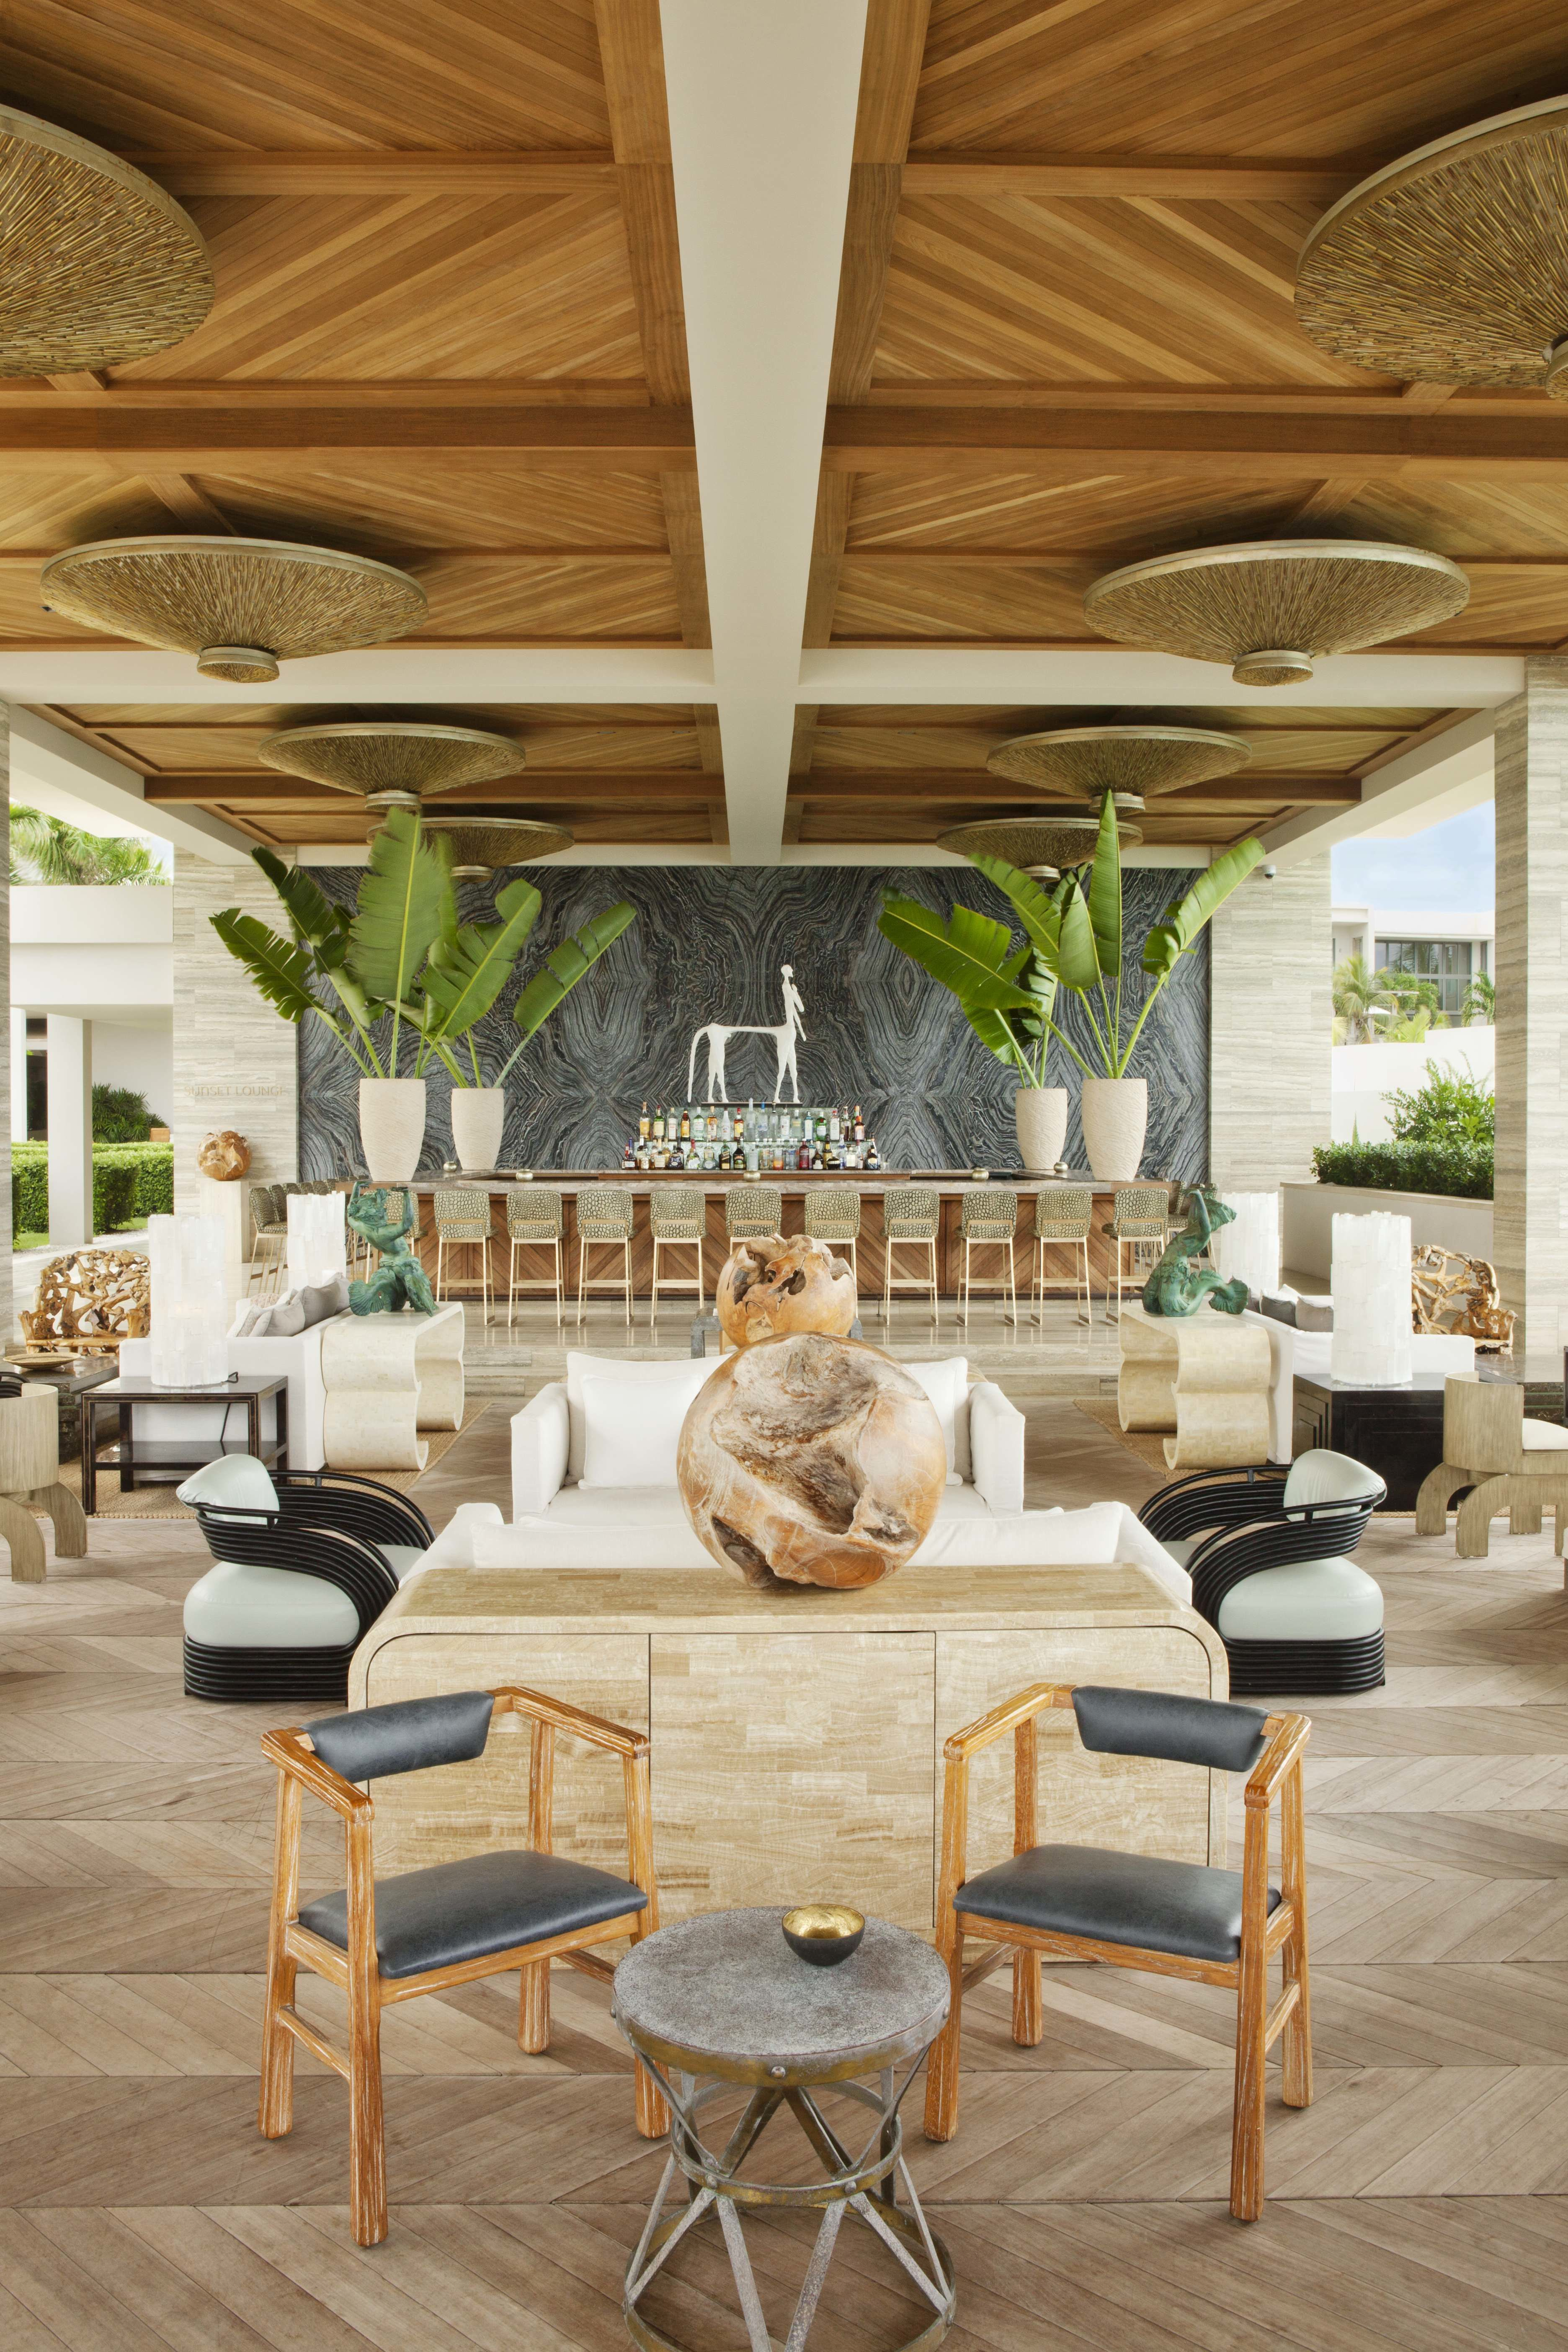 14 Hip Hotels Around the World | Kelly wearstler, Teak and Commercial